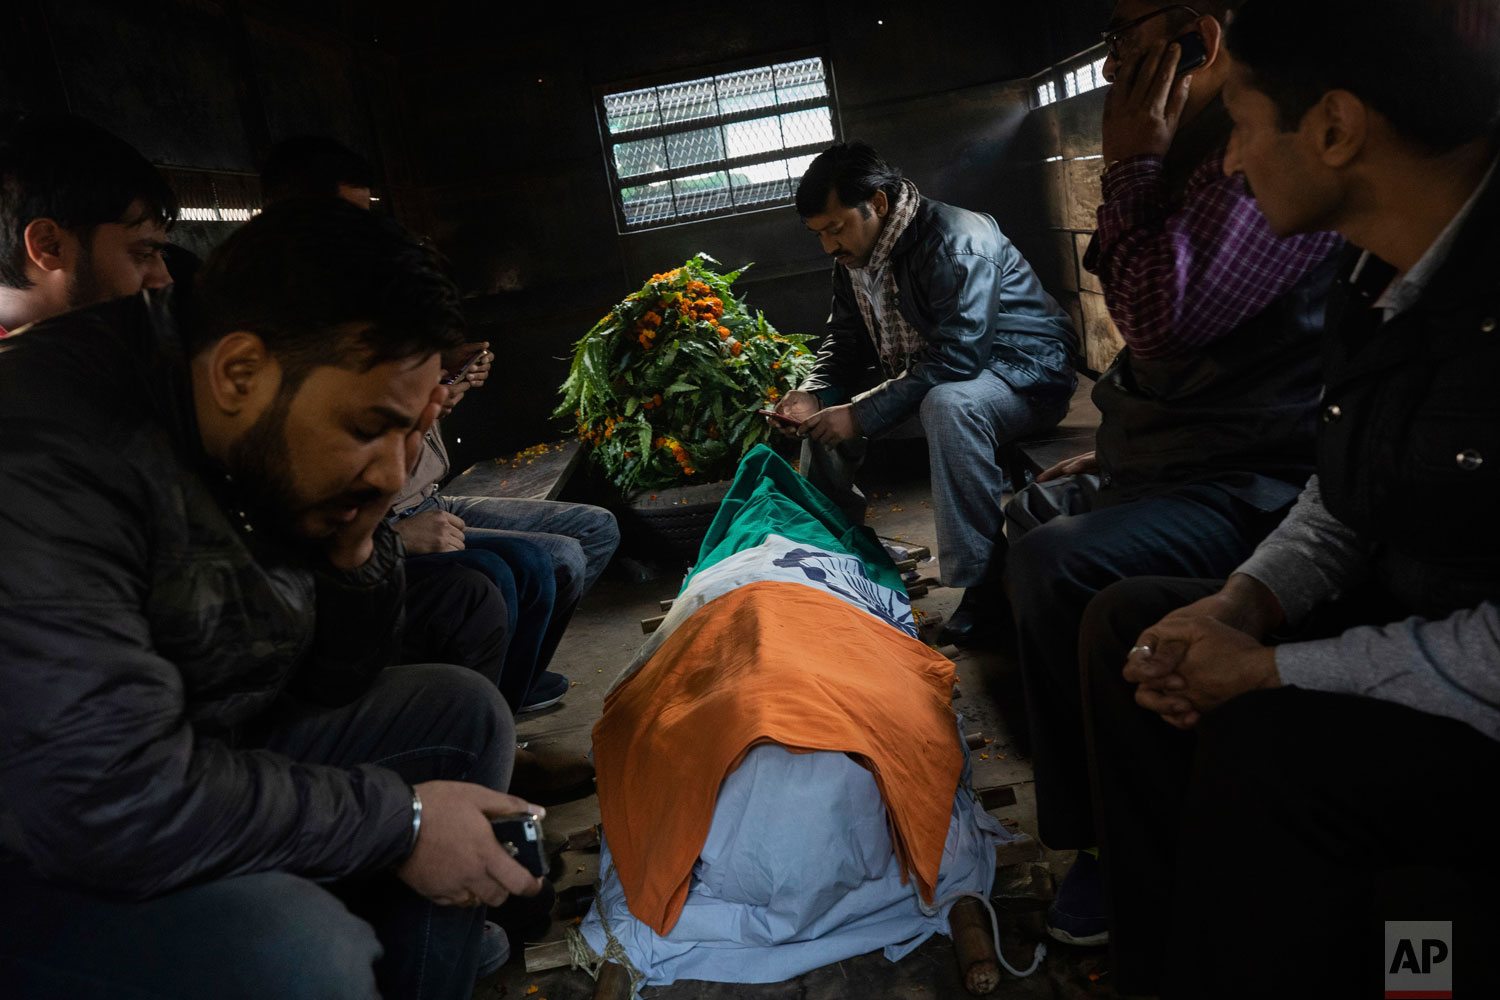 In this Tuesday, Dec. 4, 2018 photo, relatives cry next to the body of police Inspector Subodh Kumar Singh in Chingarwathi, near Bulandshahr, in the northern Indian state of Uttar Pradesh. The previous day, Singh and another person were killed in the mob violence that began with accusations of cow slaughter in the area. (AP Photo/Bernat Armangue)